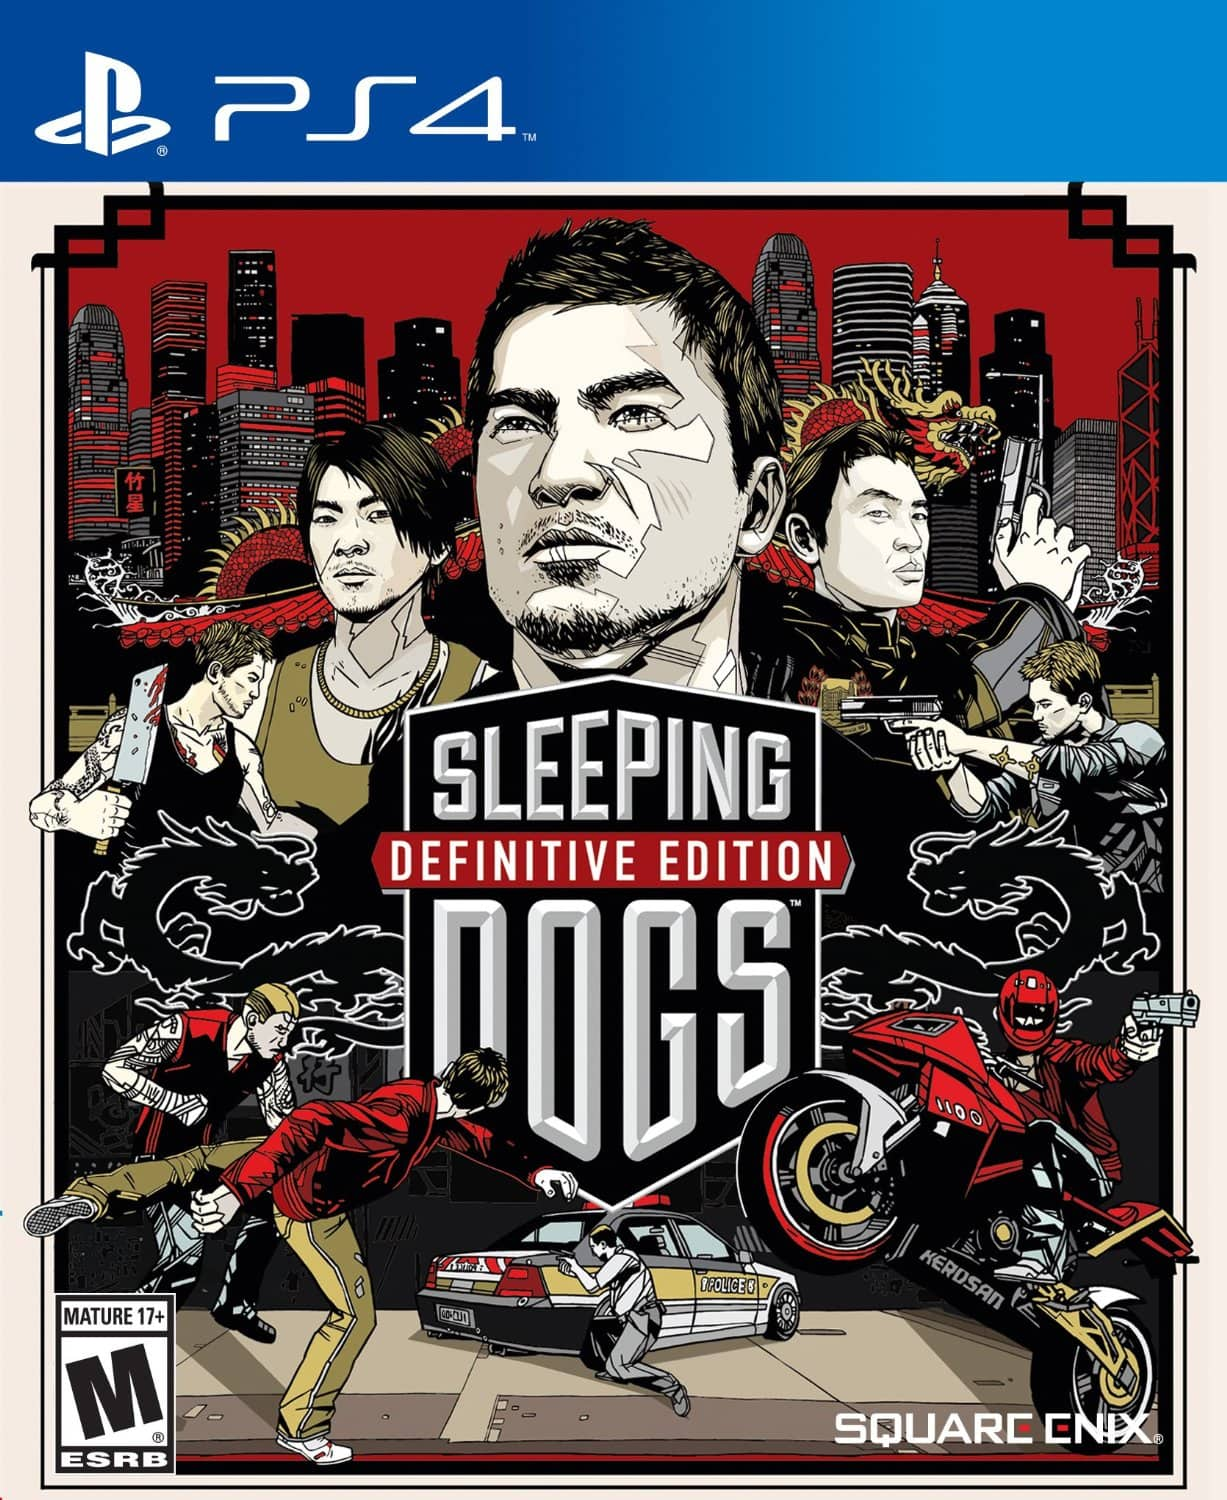 Playstation Store (PSN) Square Enix Sale PS3, PS4 including Sleeping Dogs or Tomb Raider Definitive Editions $7.49ea and more from $1.49